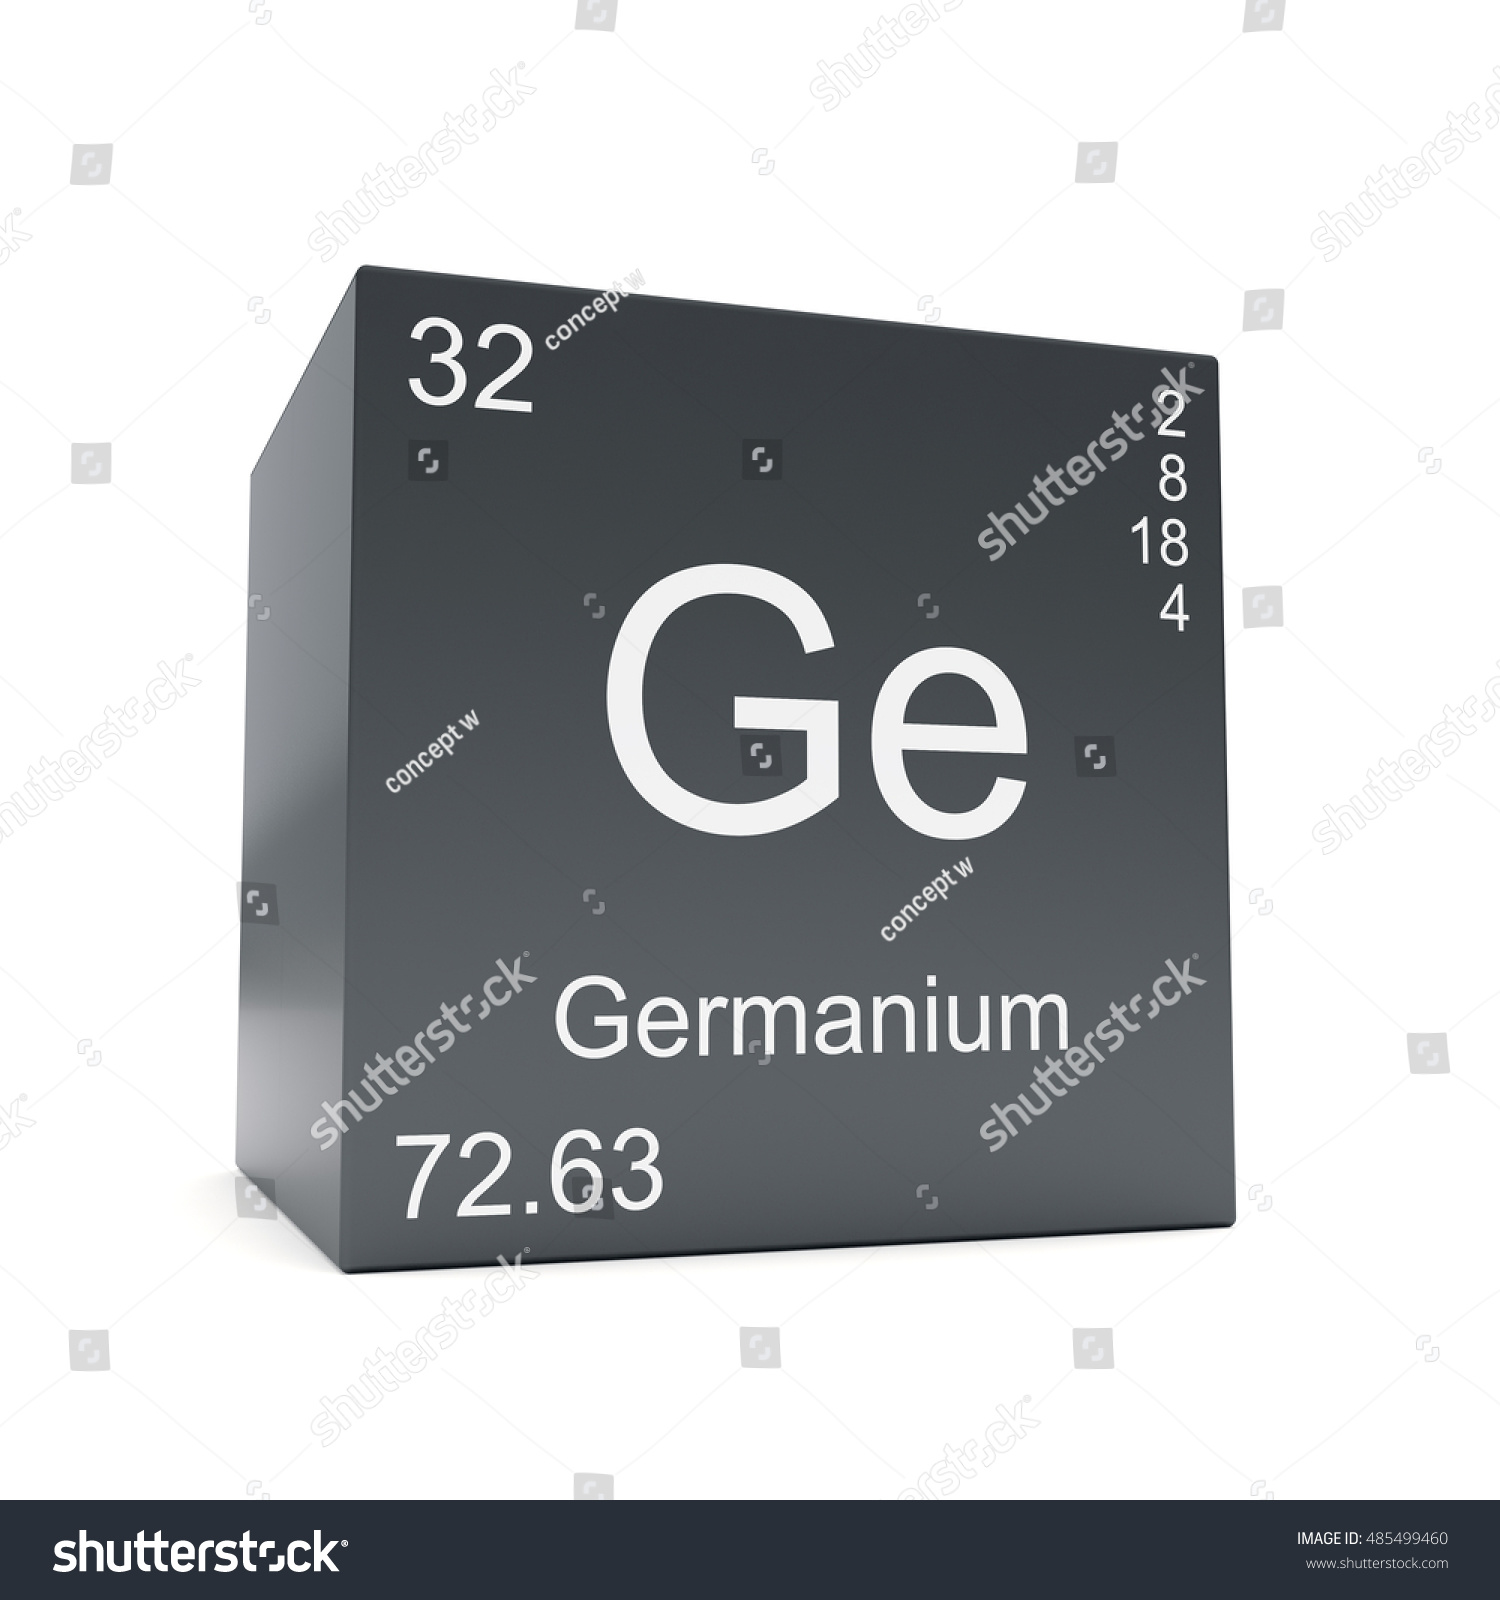 Germanium chemical element symbol periodic table stock germanium chemical element symbol from the periodic table displayed on black cube 3d render gamestrikefo Image collections